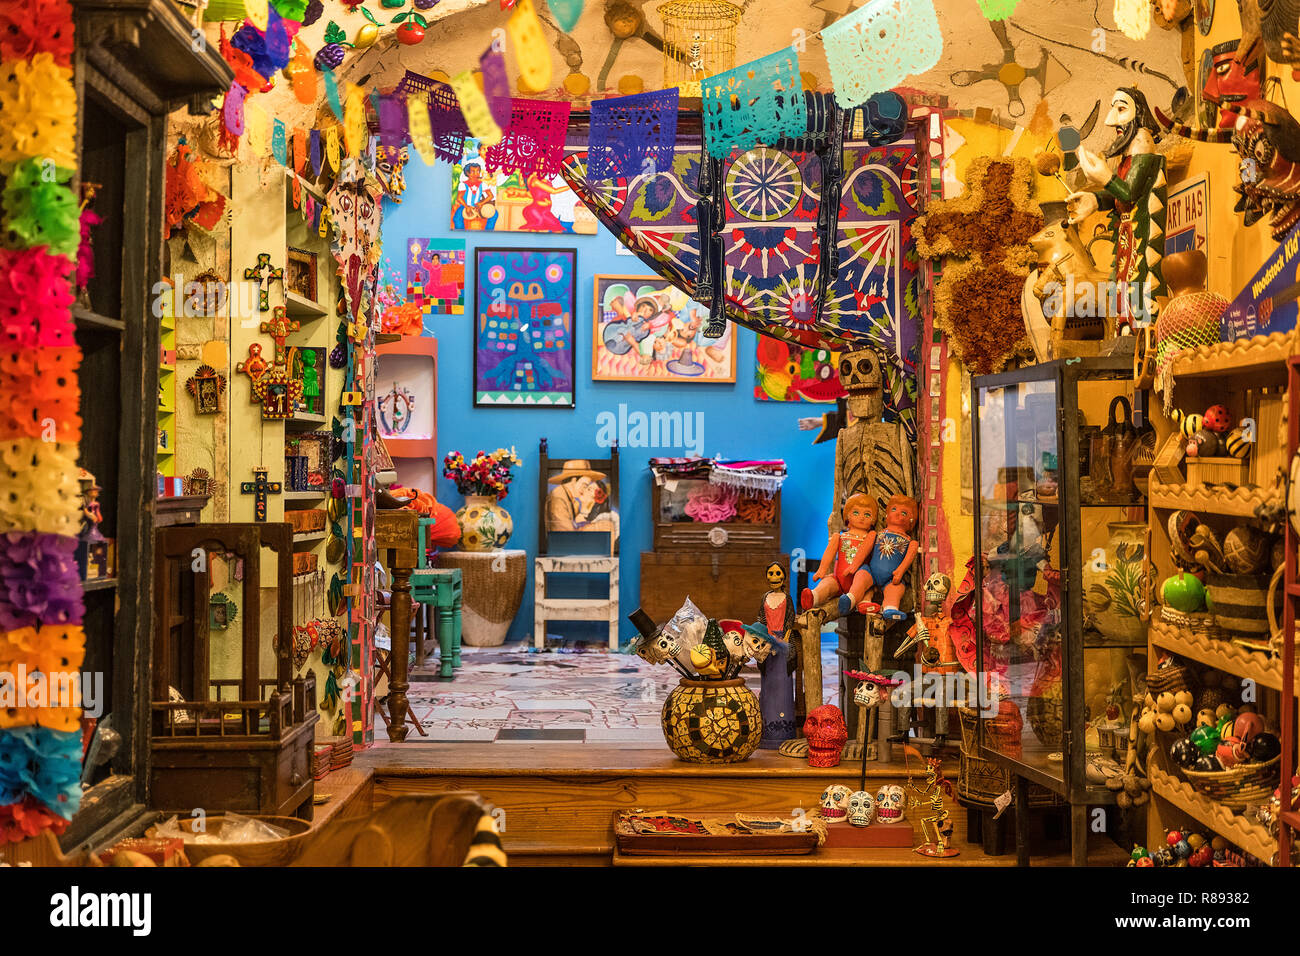 Display of Mexican arts and crafts at the Eyes Gallery, Philadelphia, Pennsylvania, USA. - Stock Image